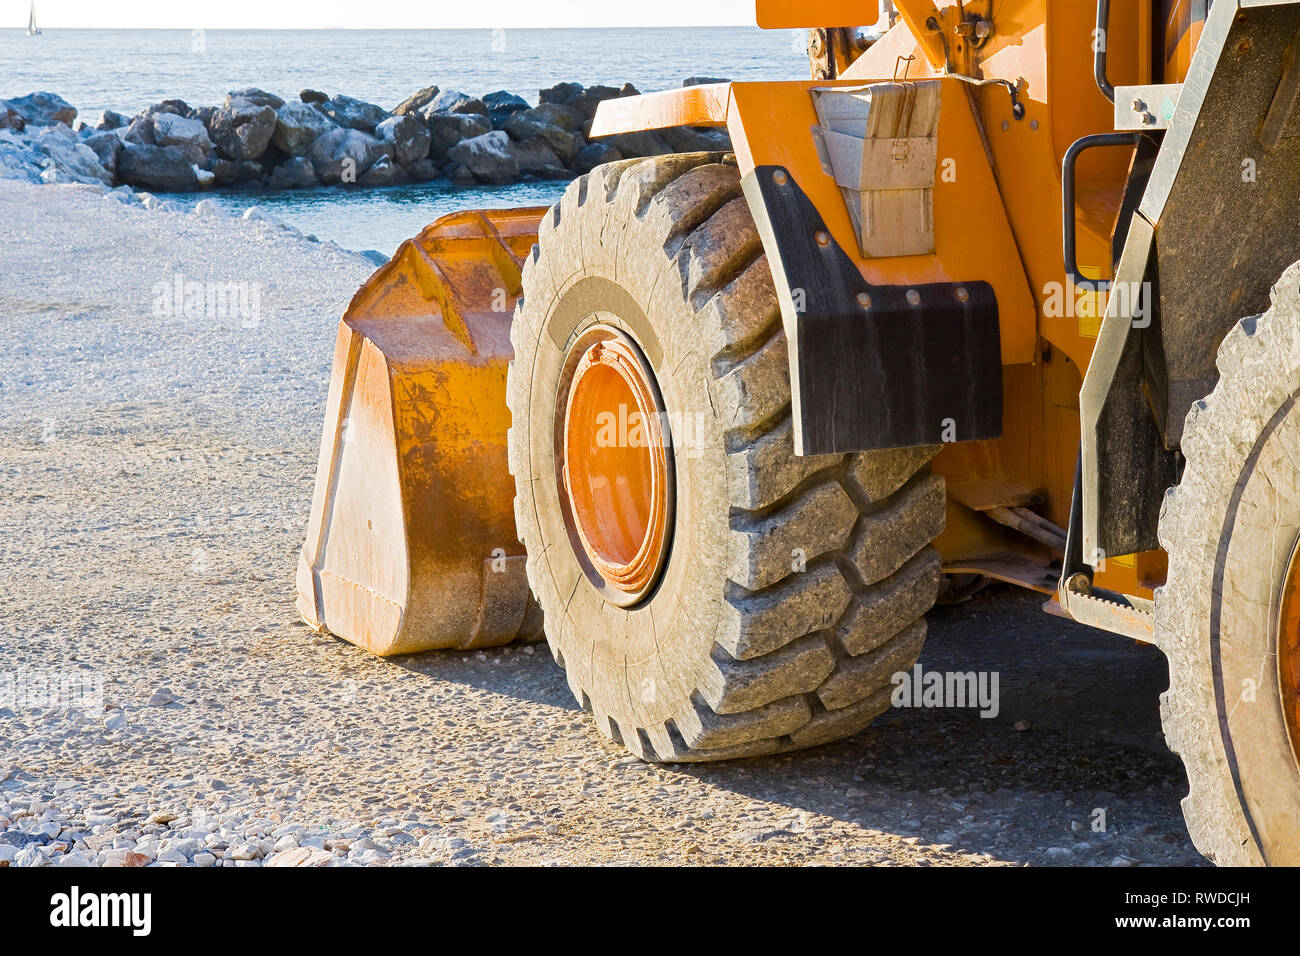 Detail of the excavator's wheel at the seaside - Stock Image